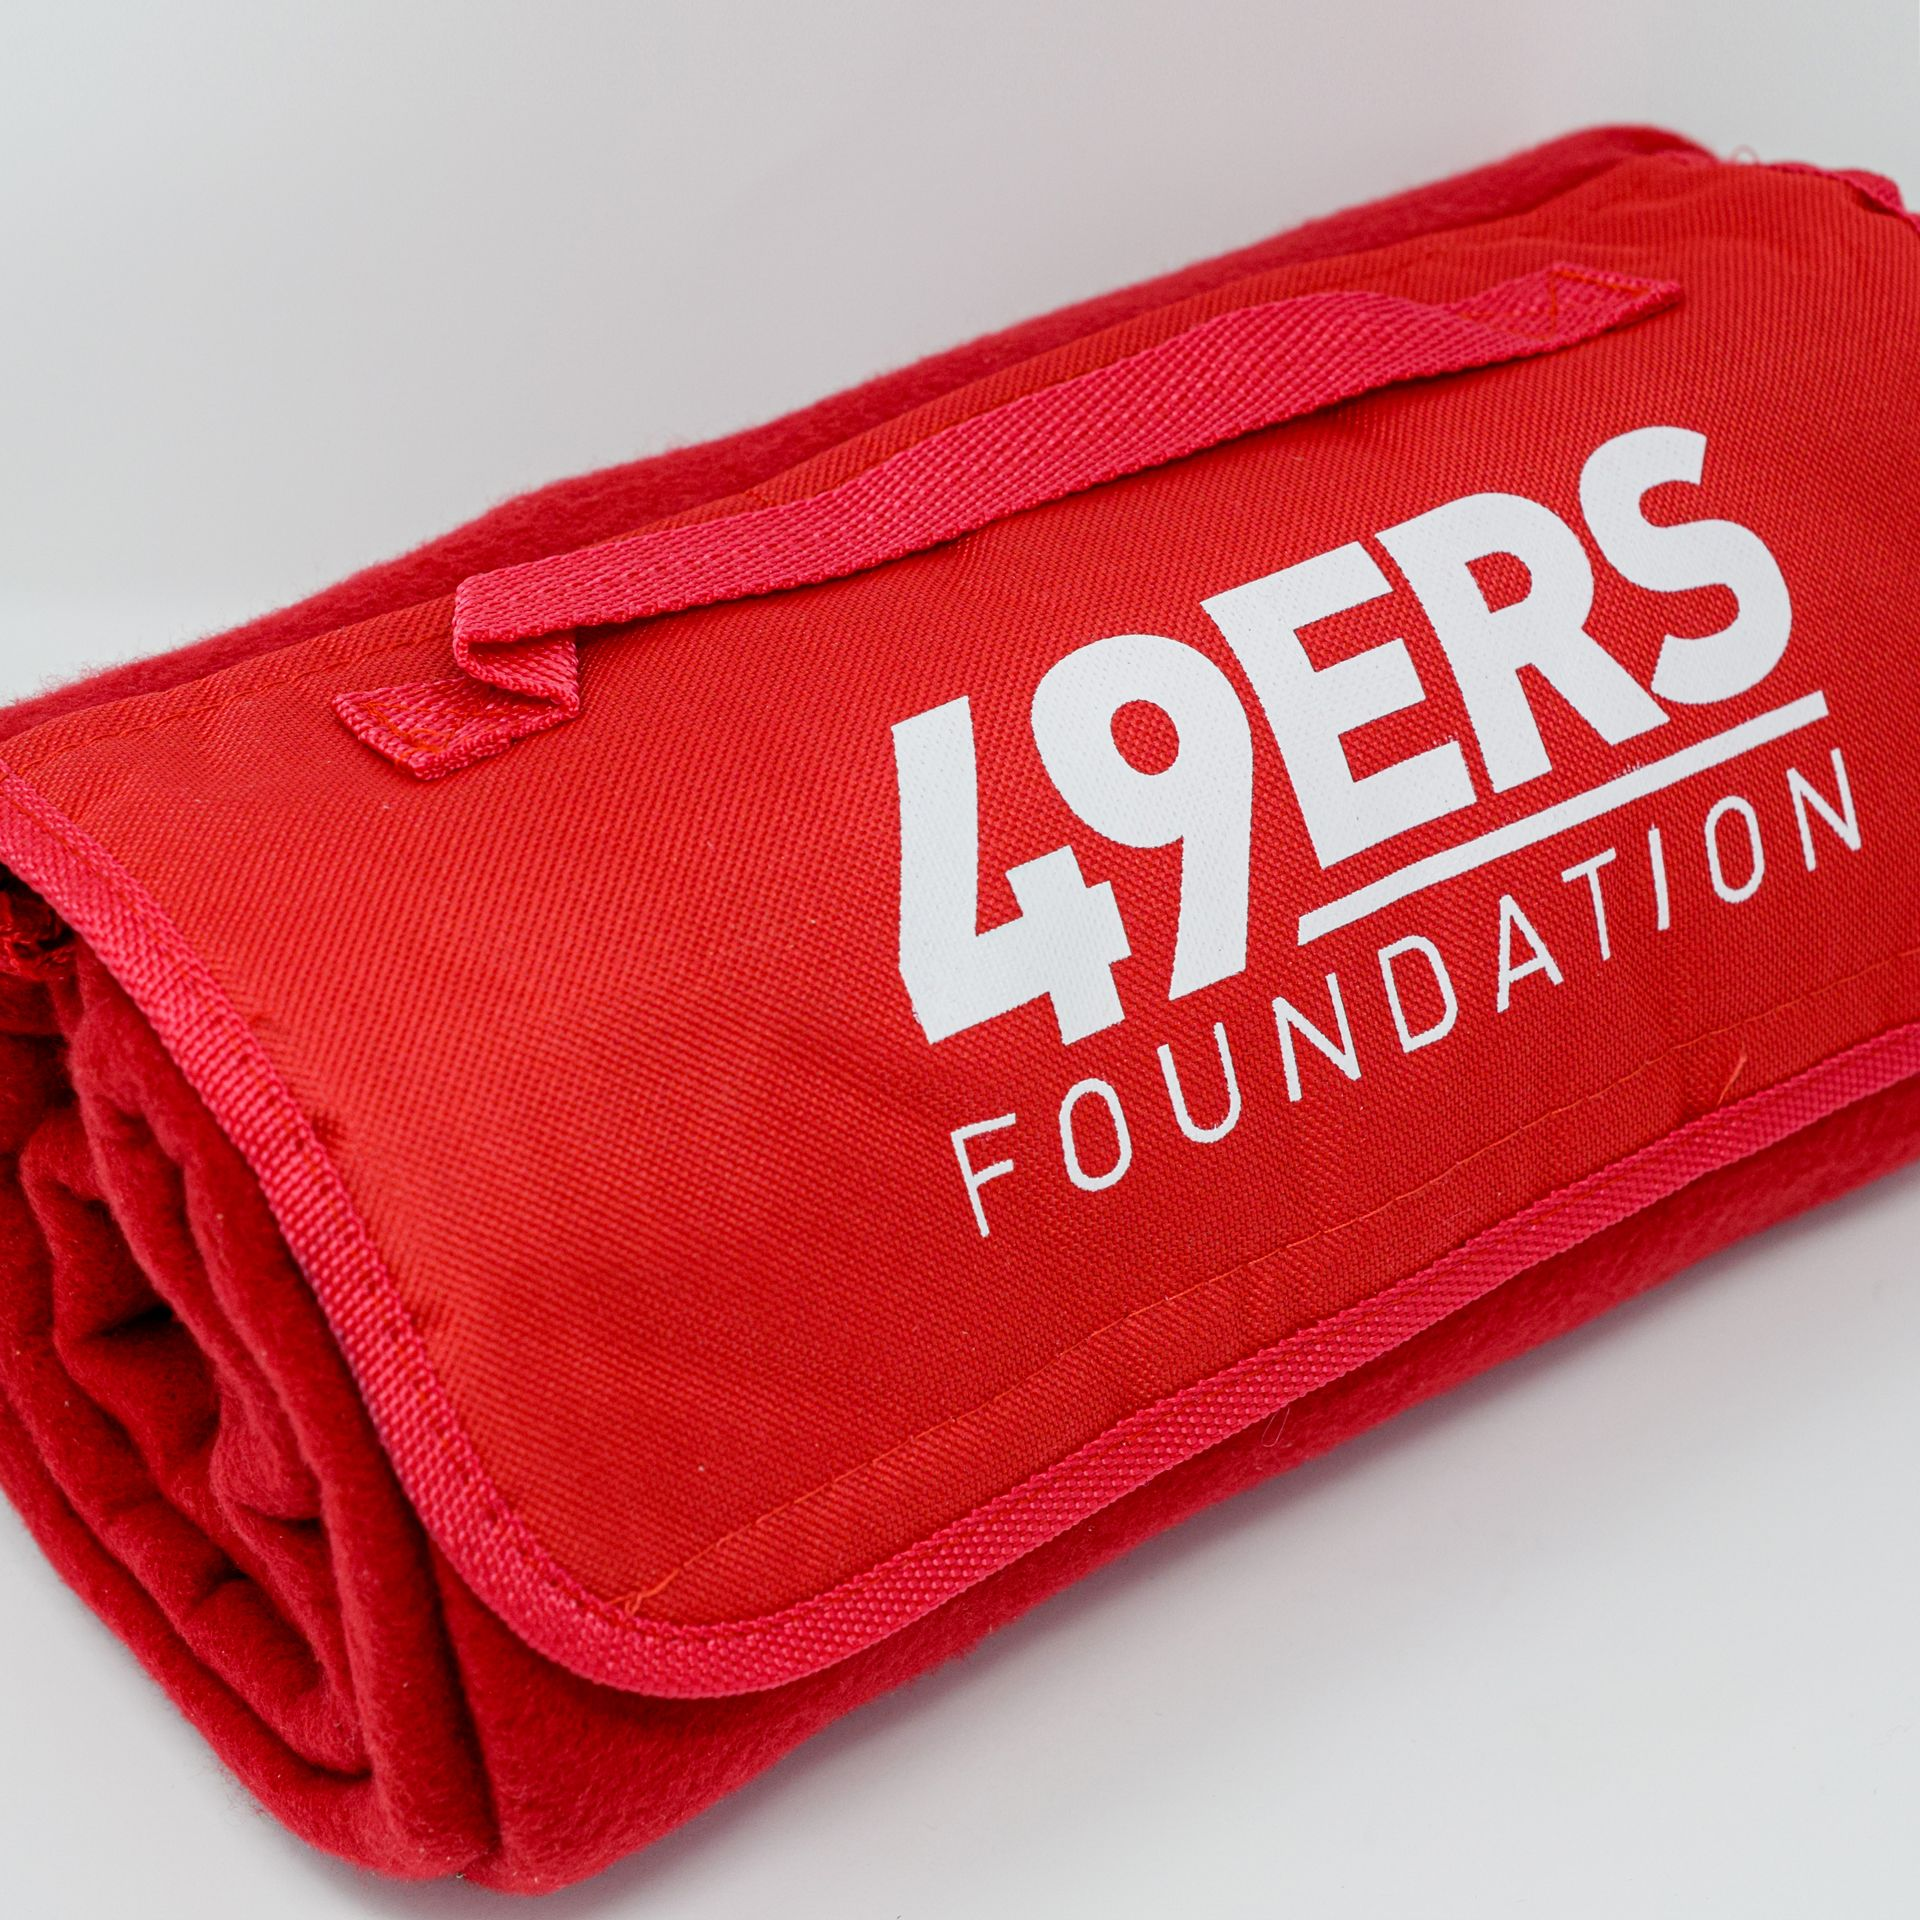 49ers Foundation Fleece Stadium Blanket